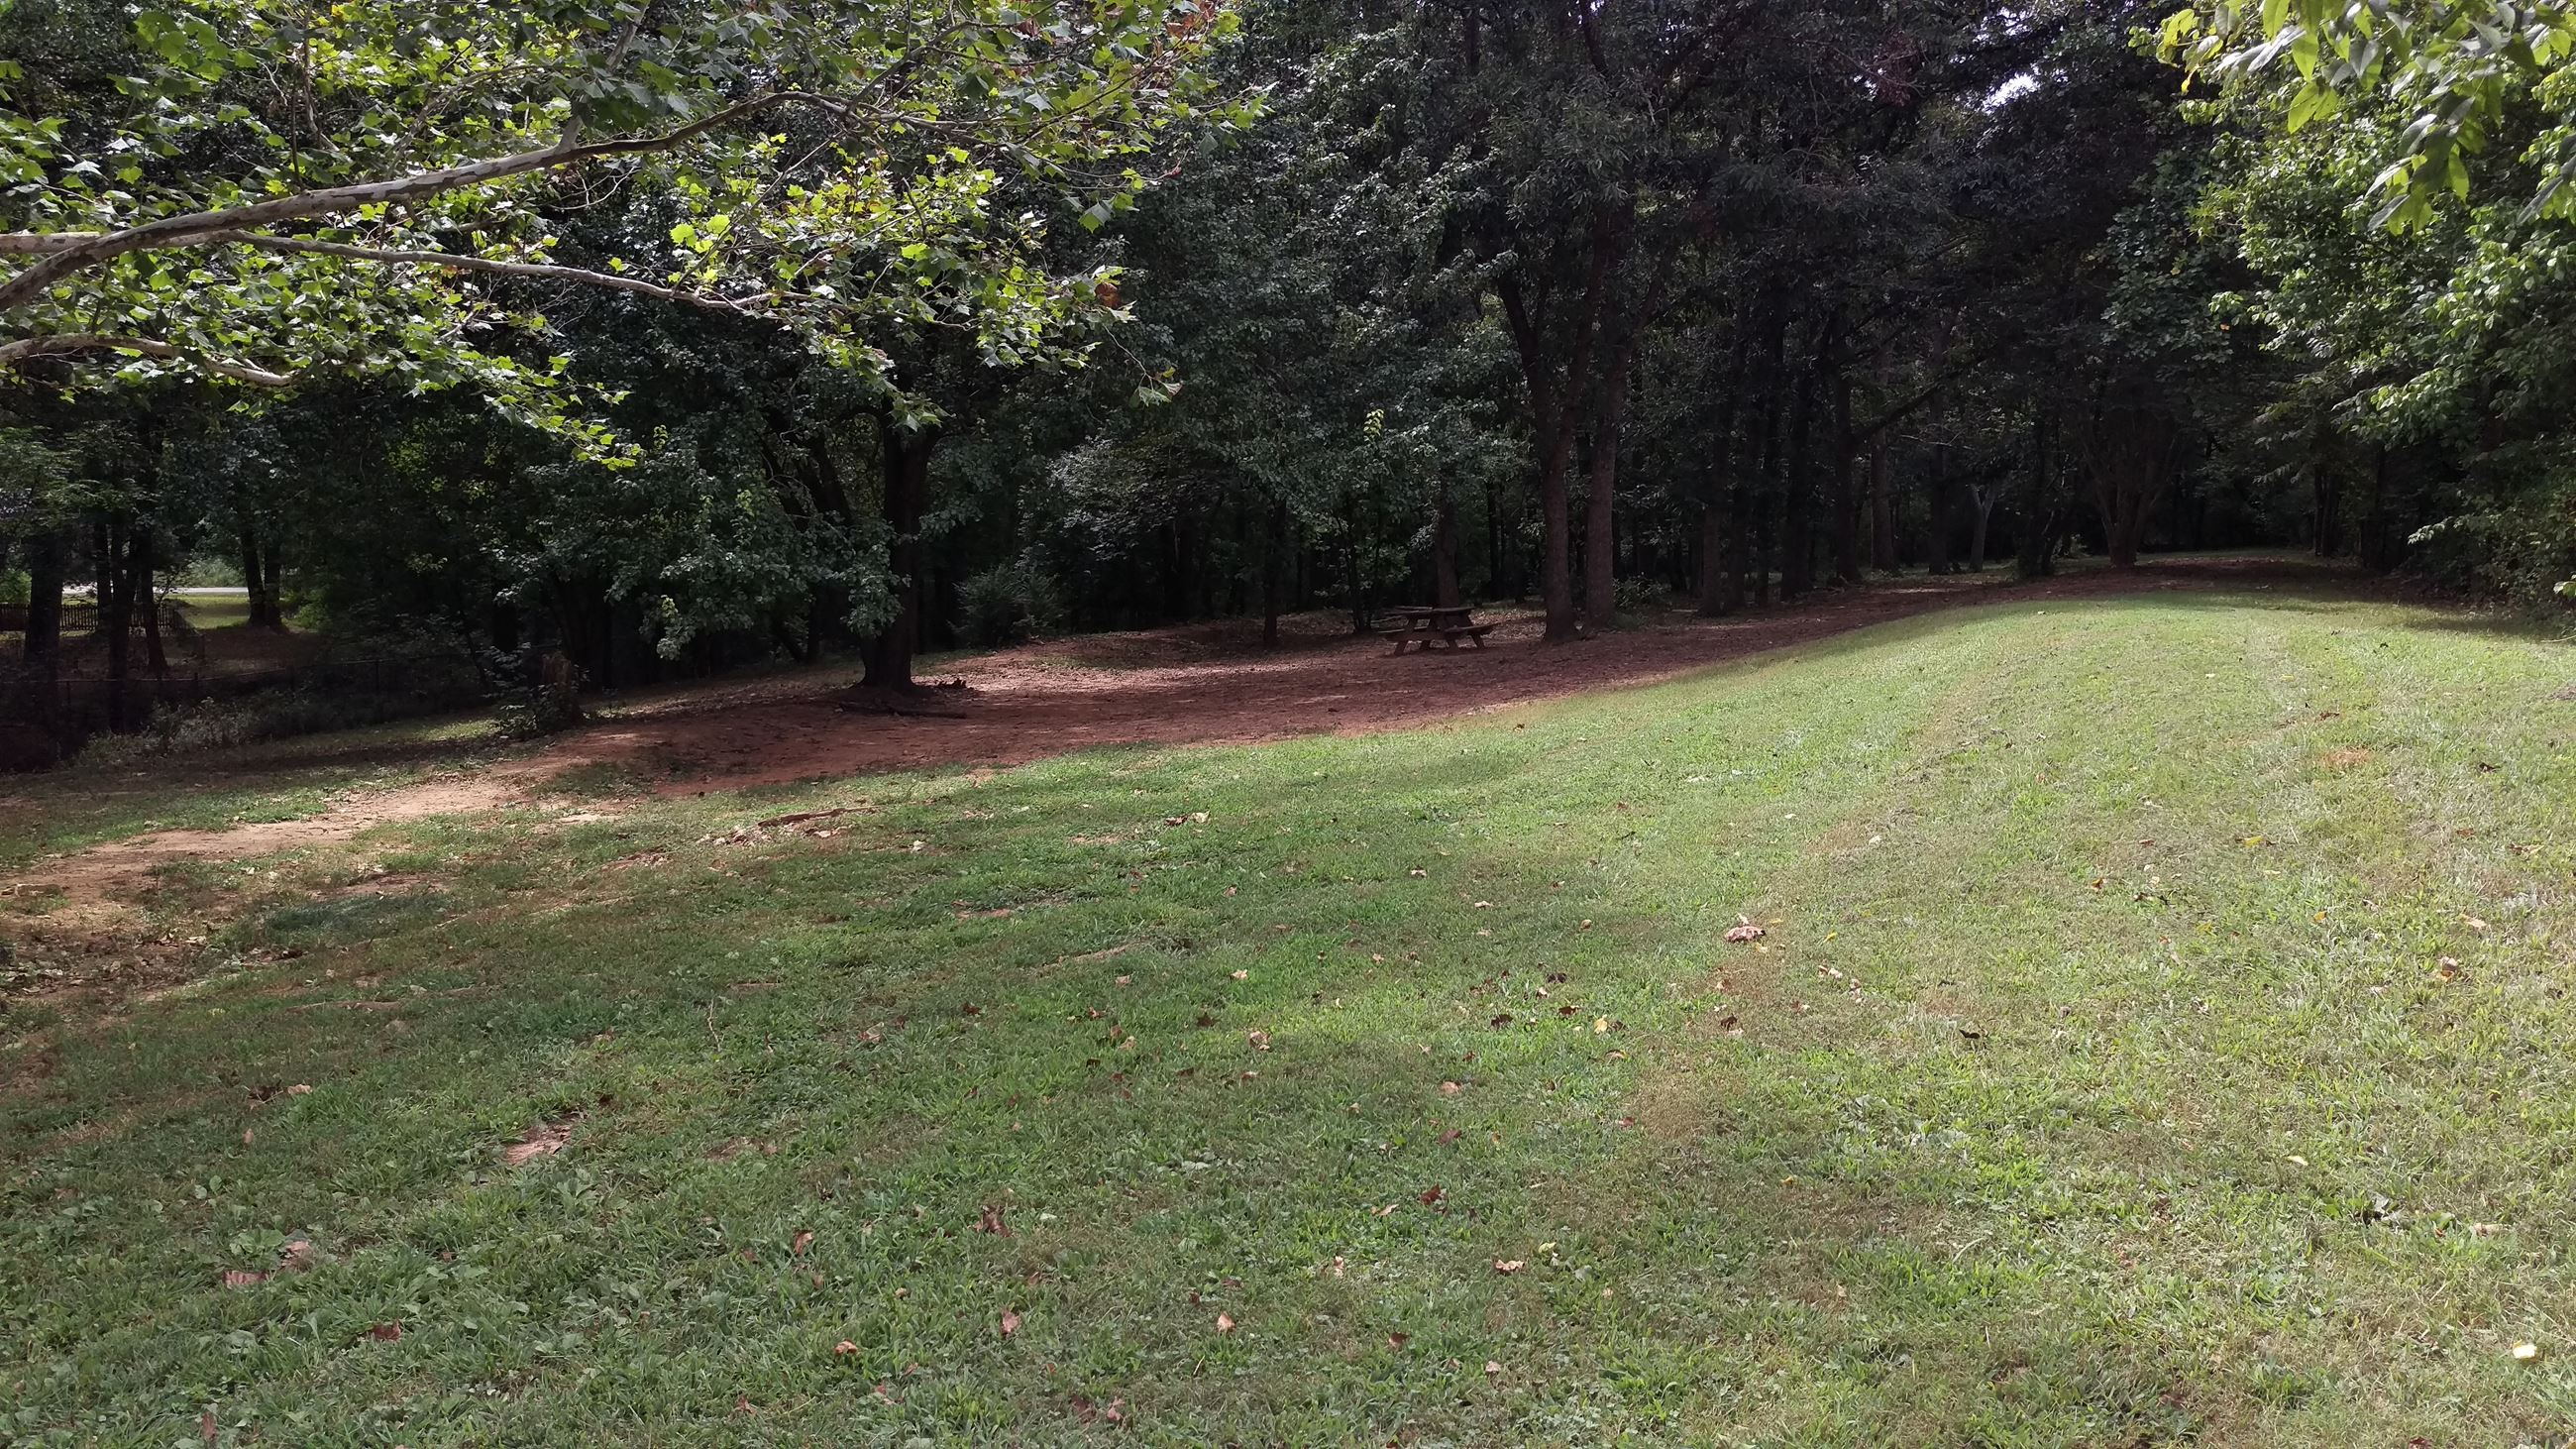 Photo of the Public Dog Park at Sandy Creek Park.